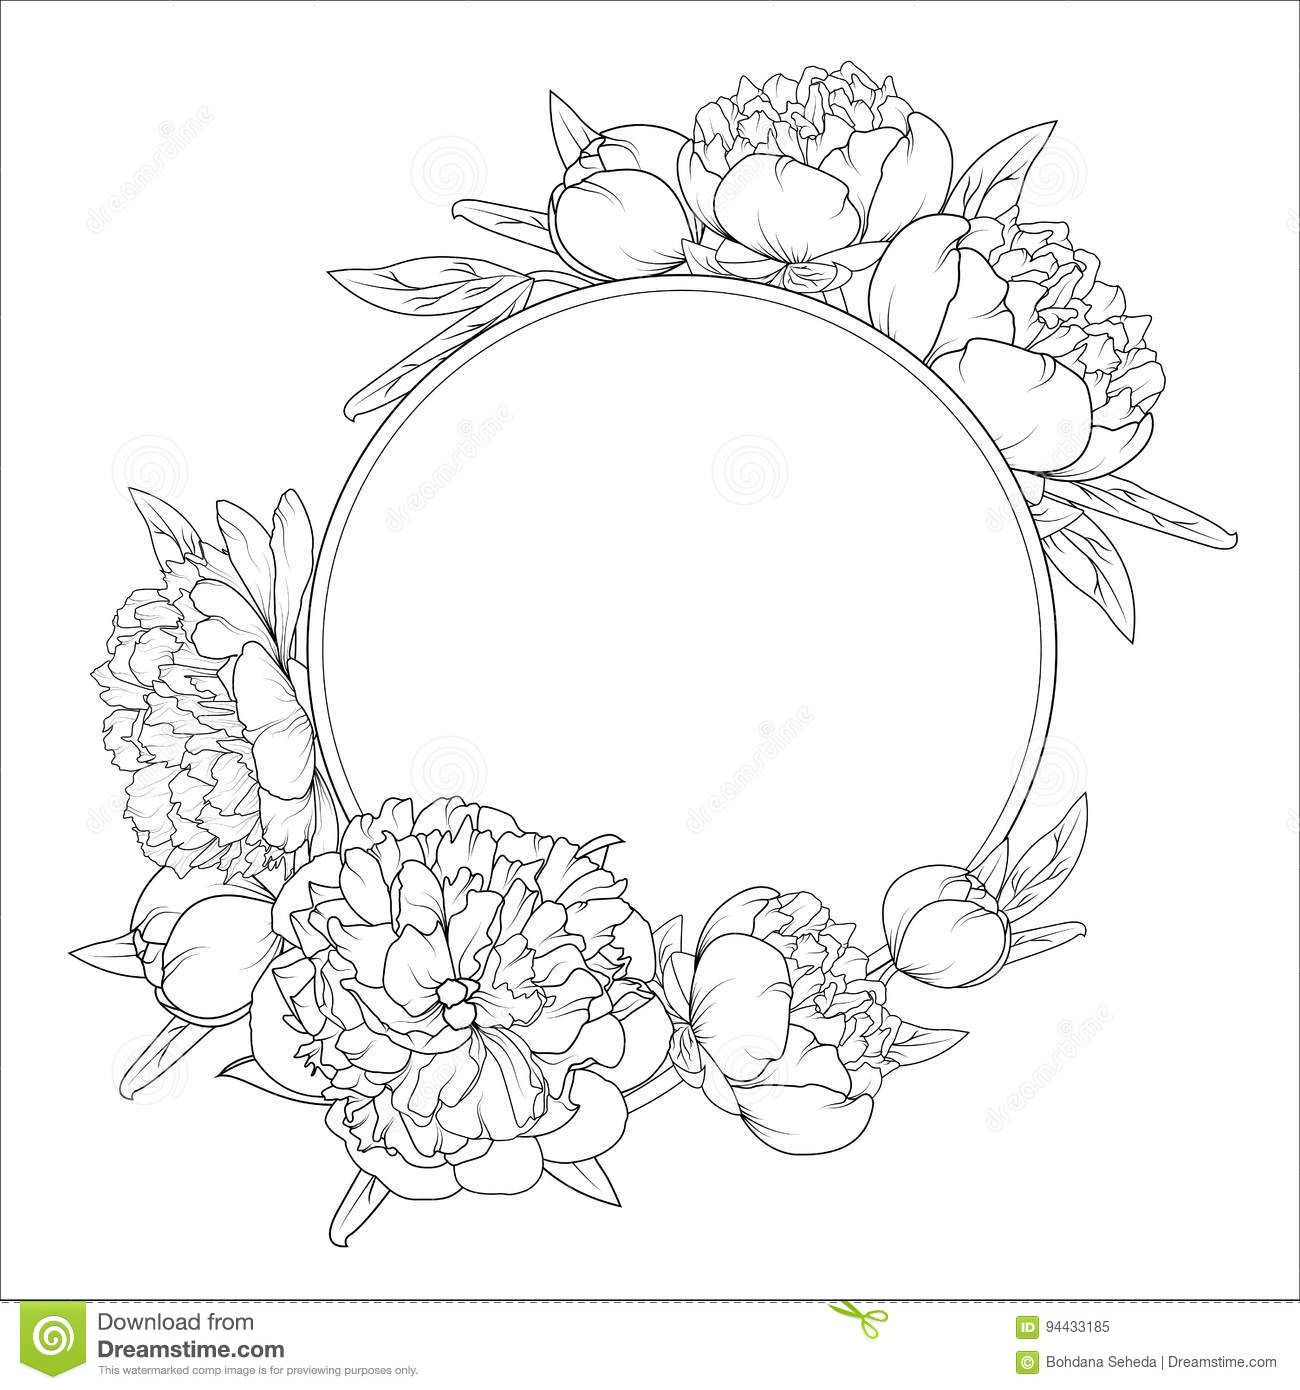 Photo About Rose Peony Spring Summer Flowers Round Frame Wreath Detailed Outline Sketch Black And White Vector Dra Wreath Drawing Peony Drawing Circle Drawing